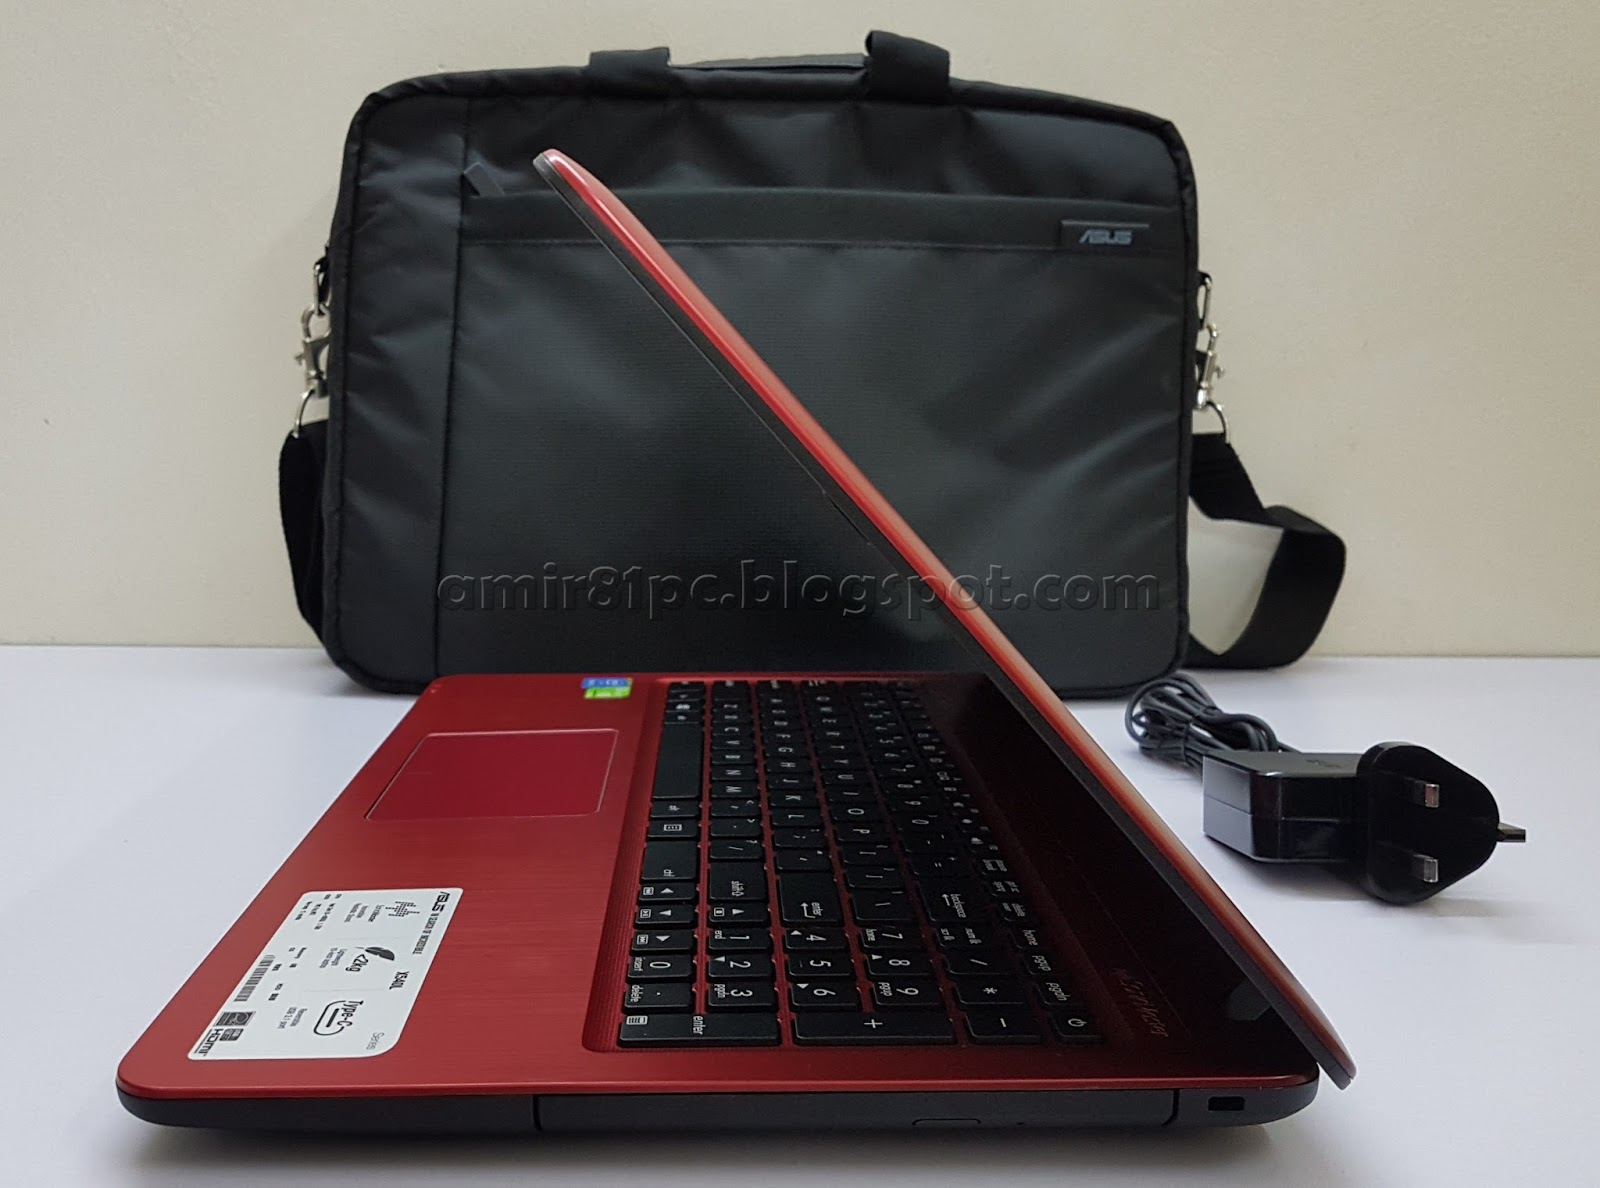 Three A Tech Computer Sales and Services: Used Laptop Asus